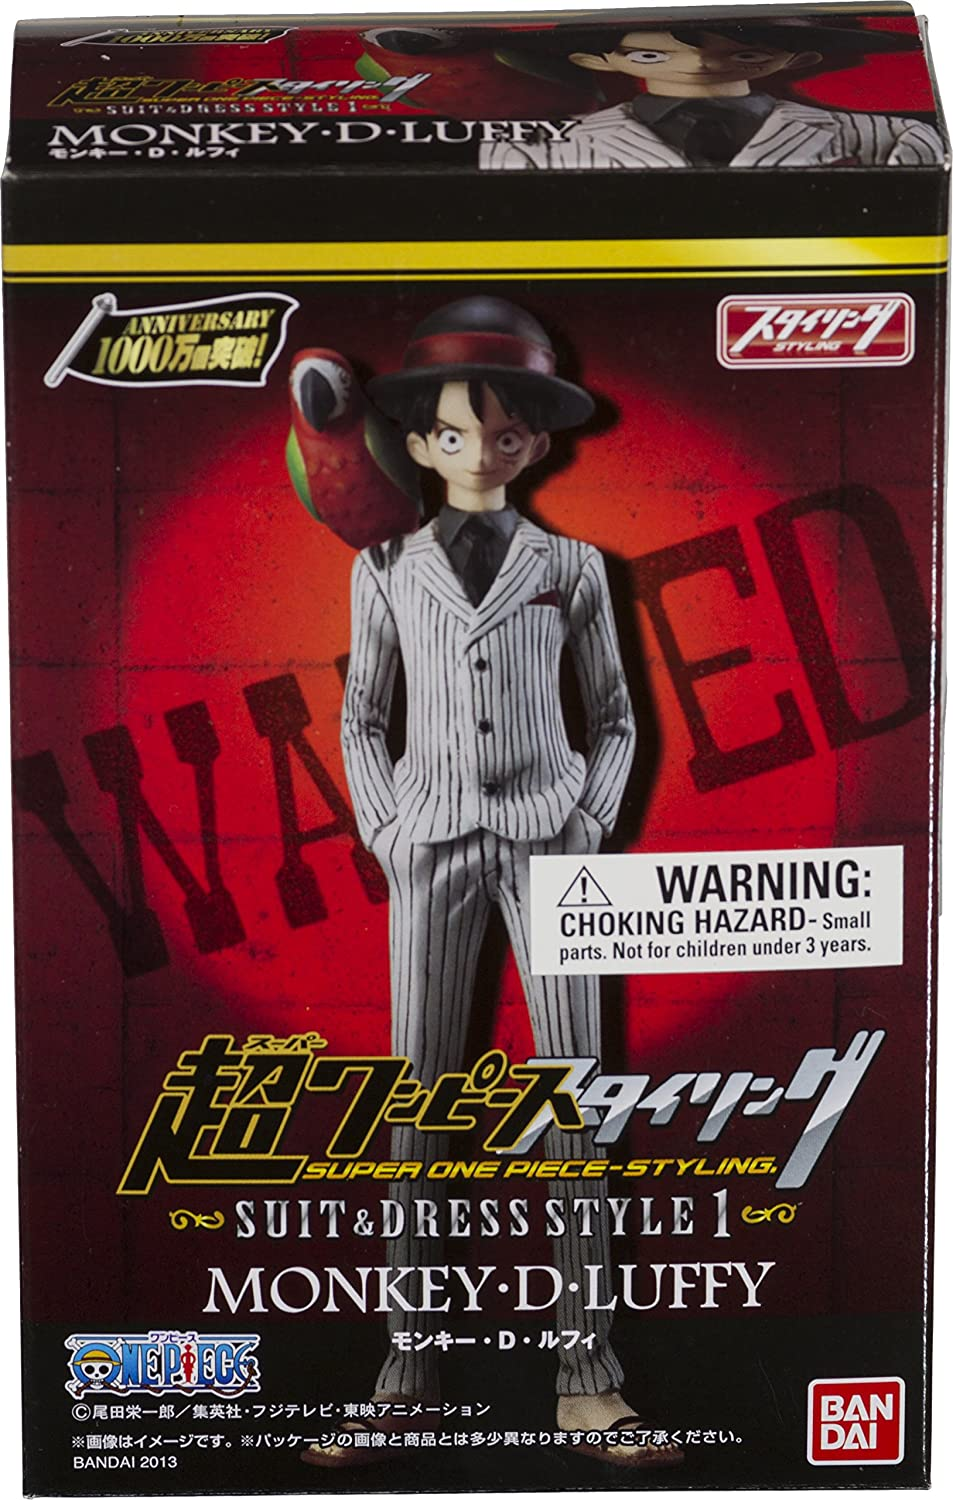 Japanese Import Suit /& Dress Style #1 Monkey D Luffy ~5.3 Figure Super One Piece Styling Figure